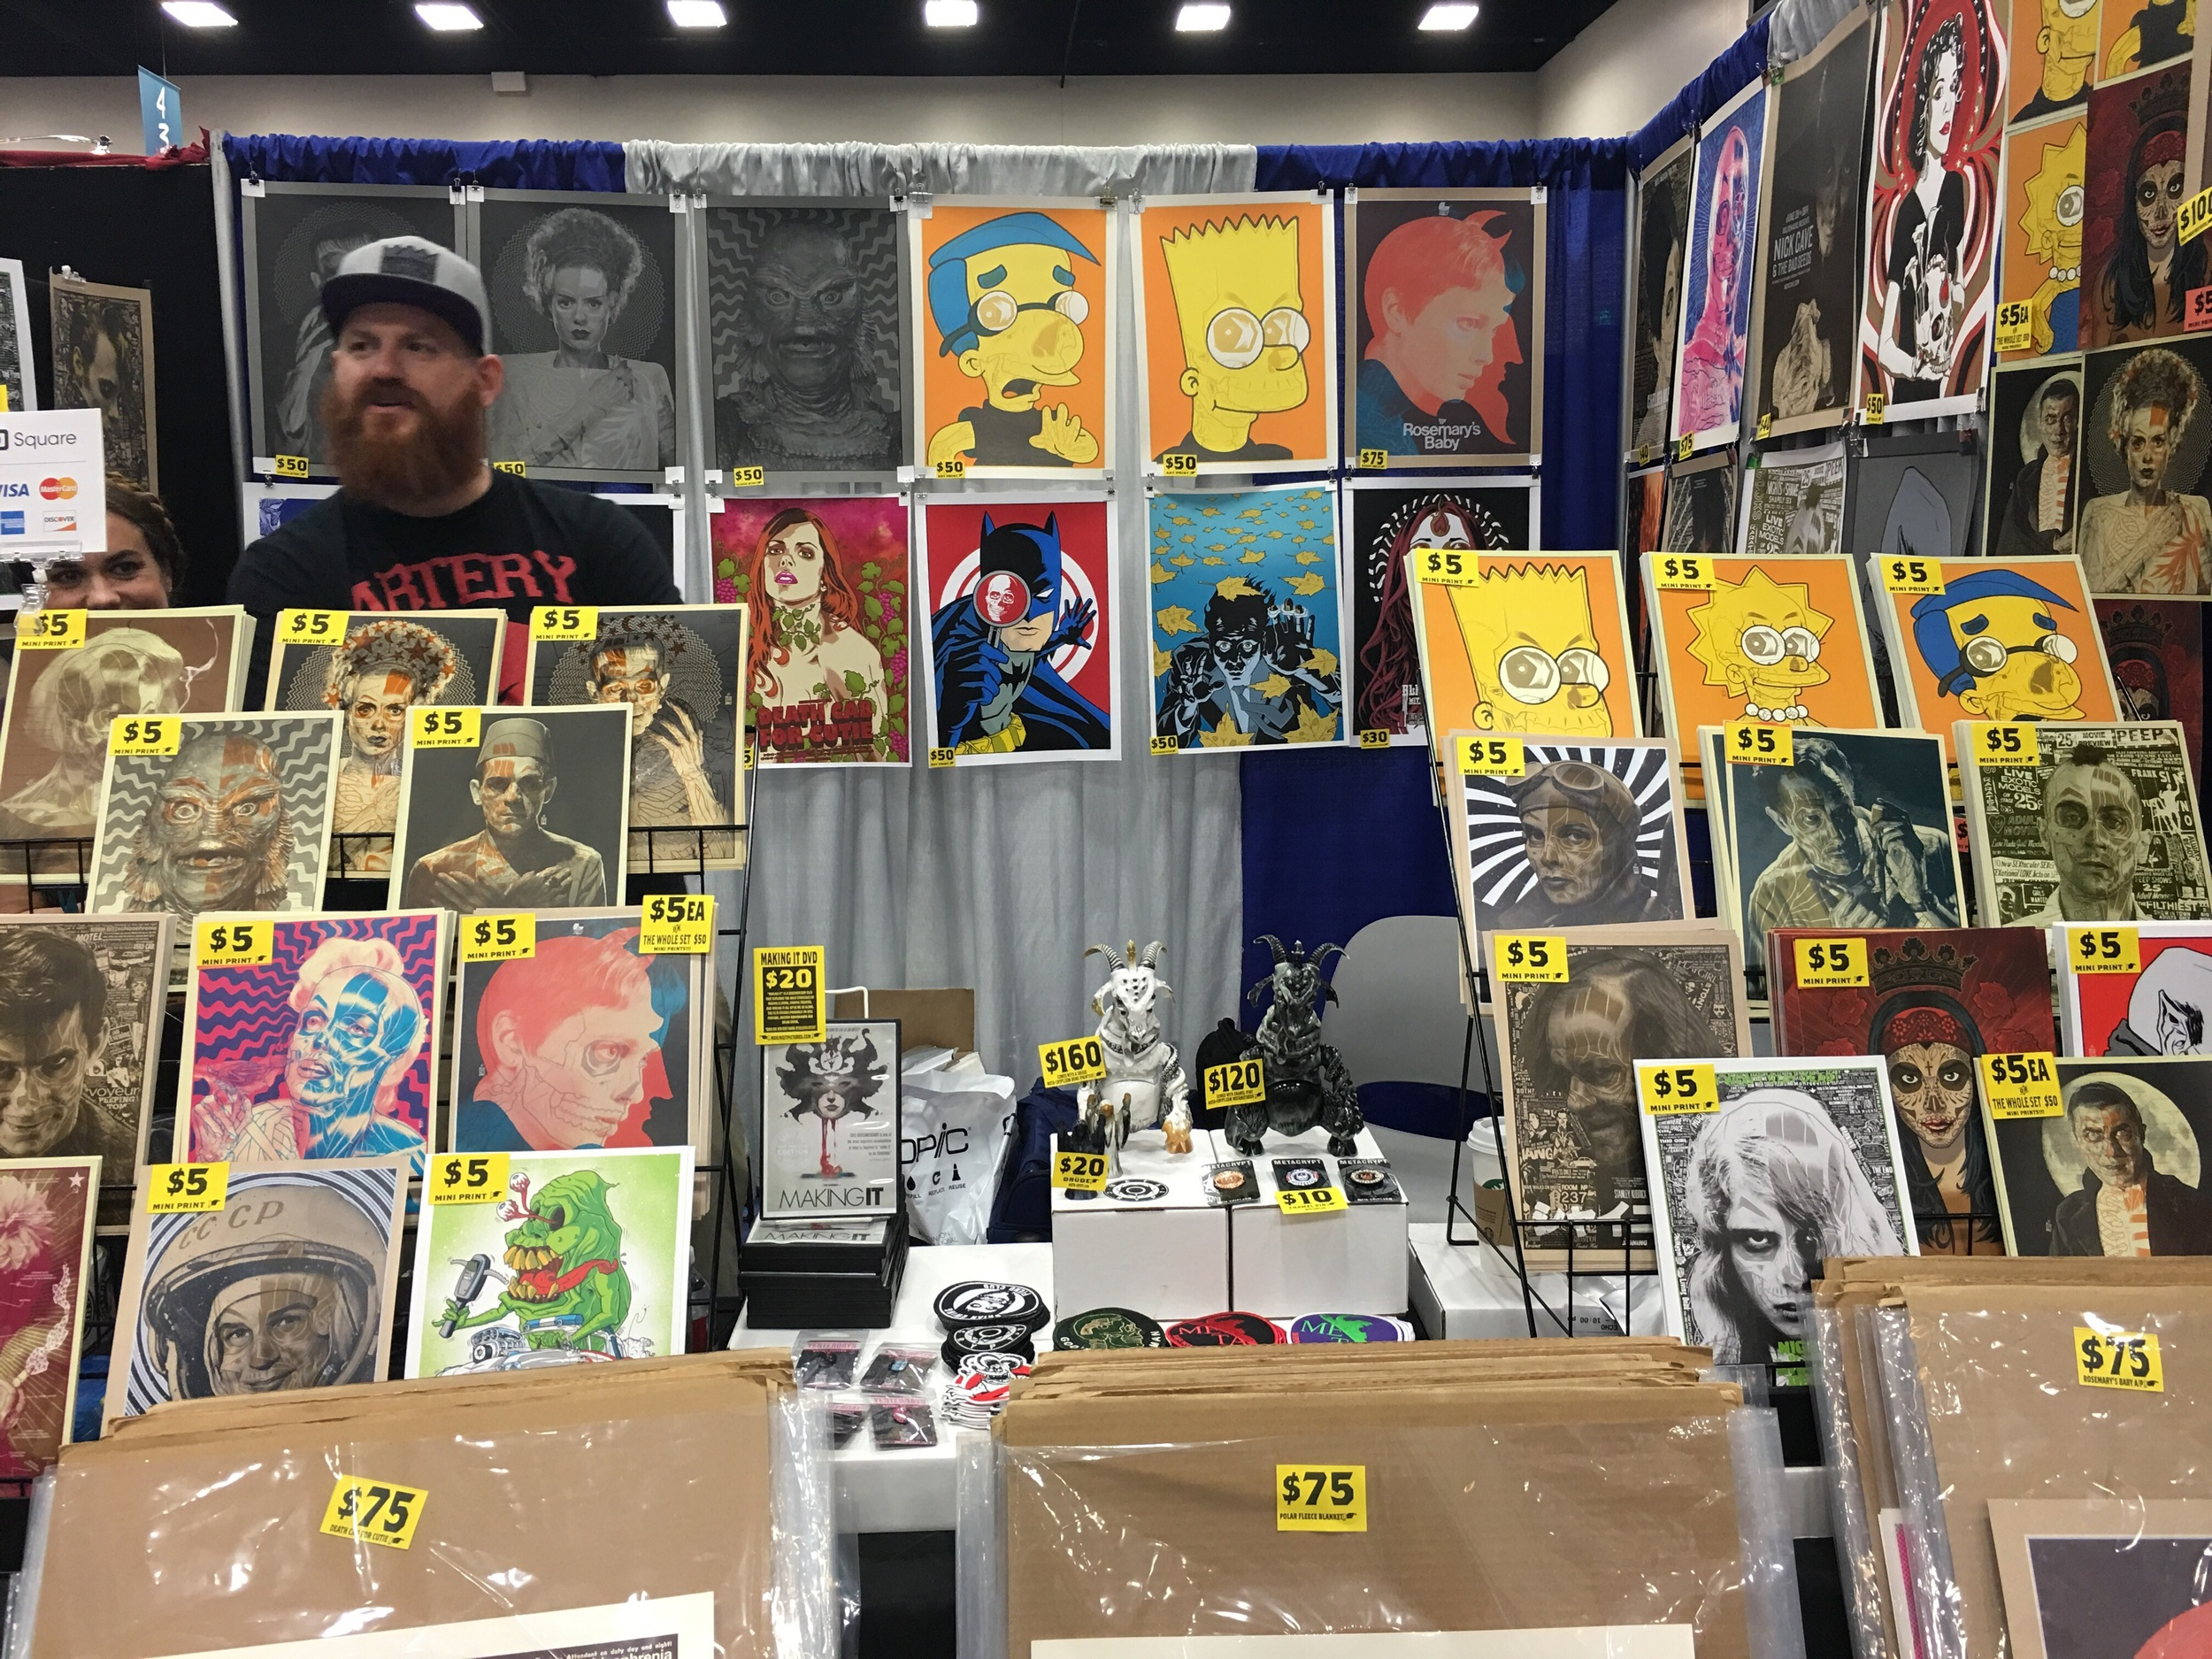 Brian Ewing  booth 4505 (artist not shown) and don't forget his Toy company Metacrypt!